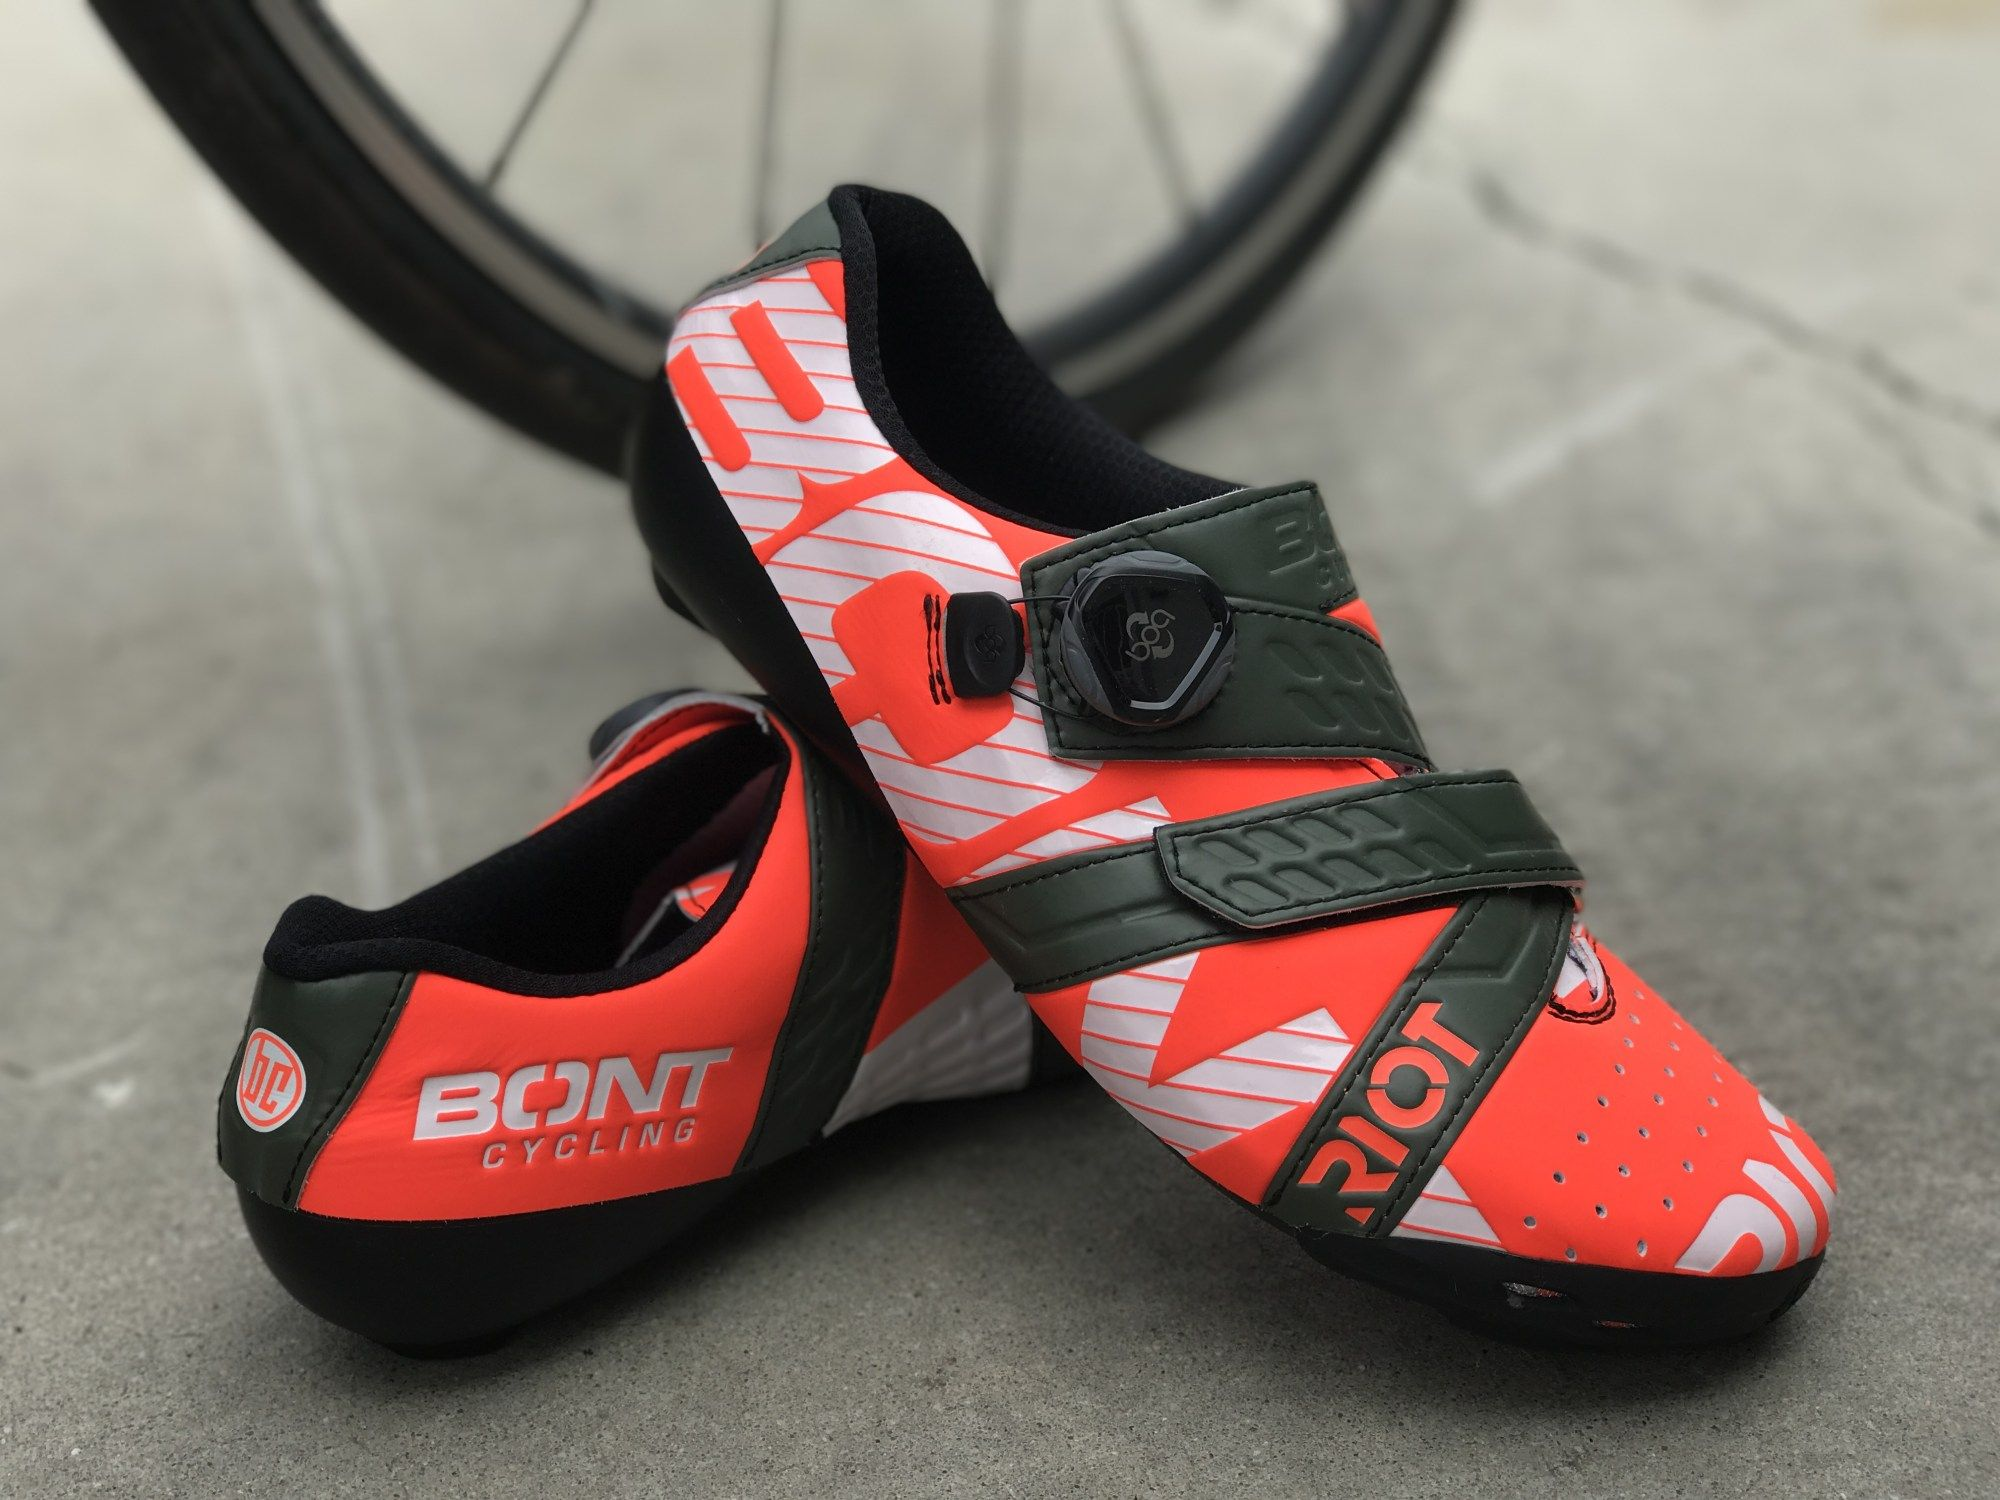 Best Cycling Shoes for Wide Width Feet